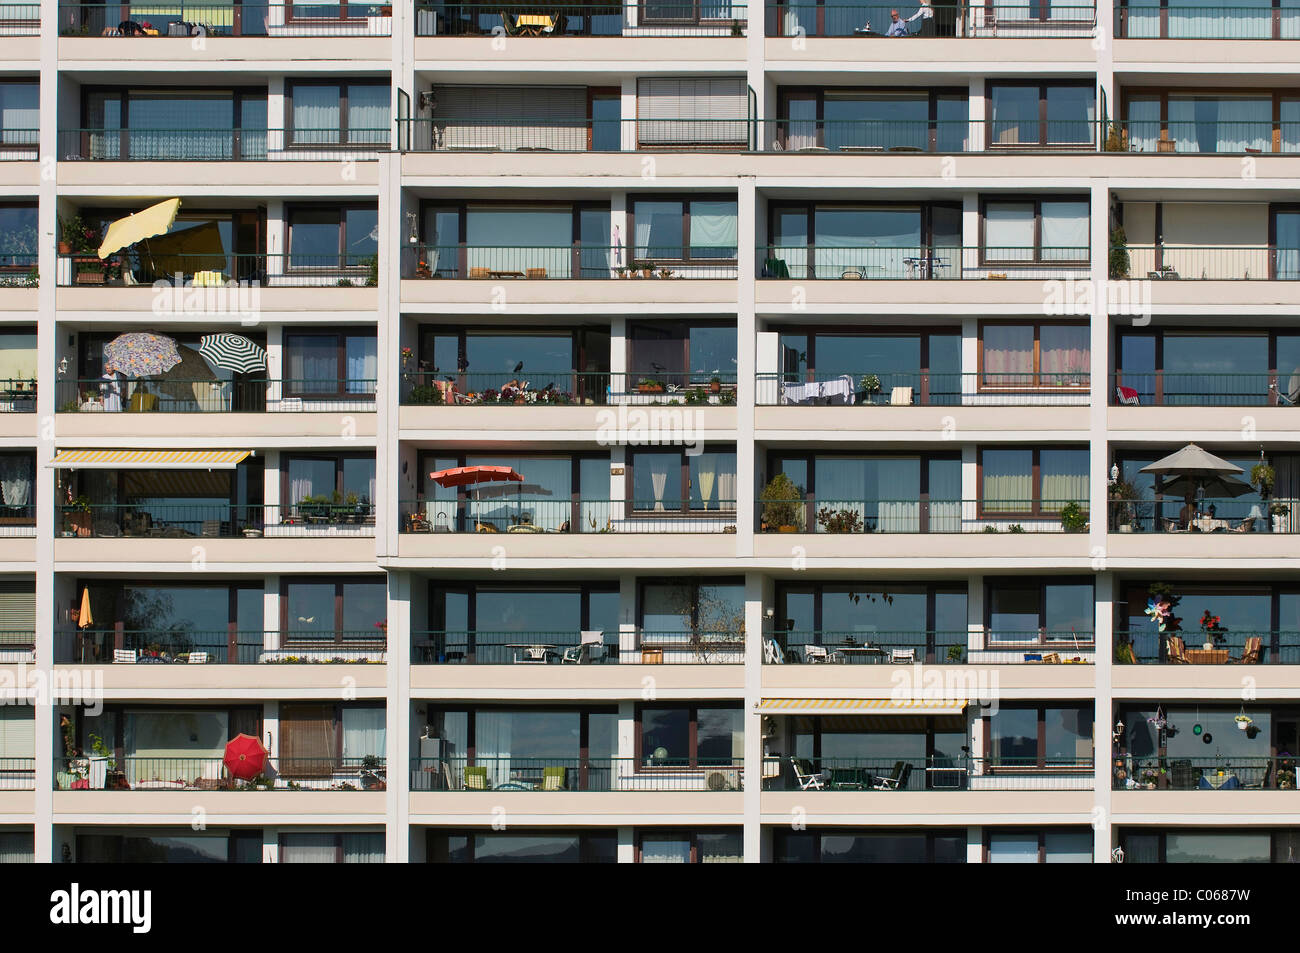 House facade, many balconies with parasols and furniture - Stock Image